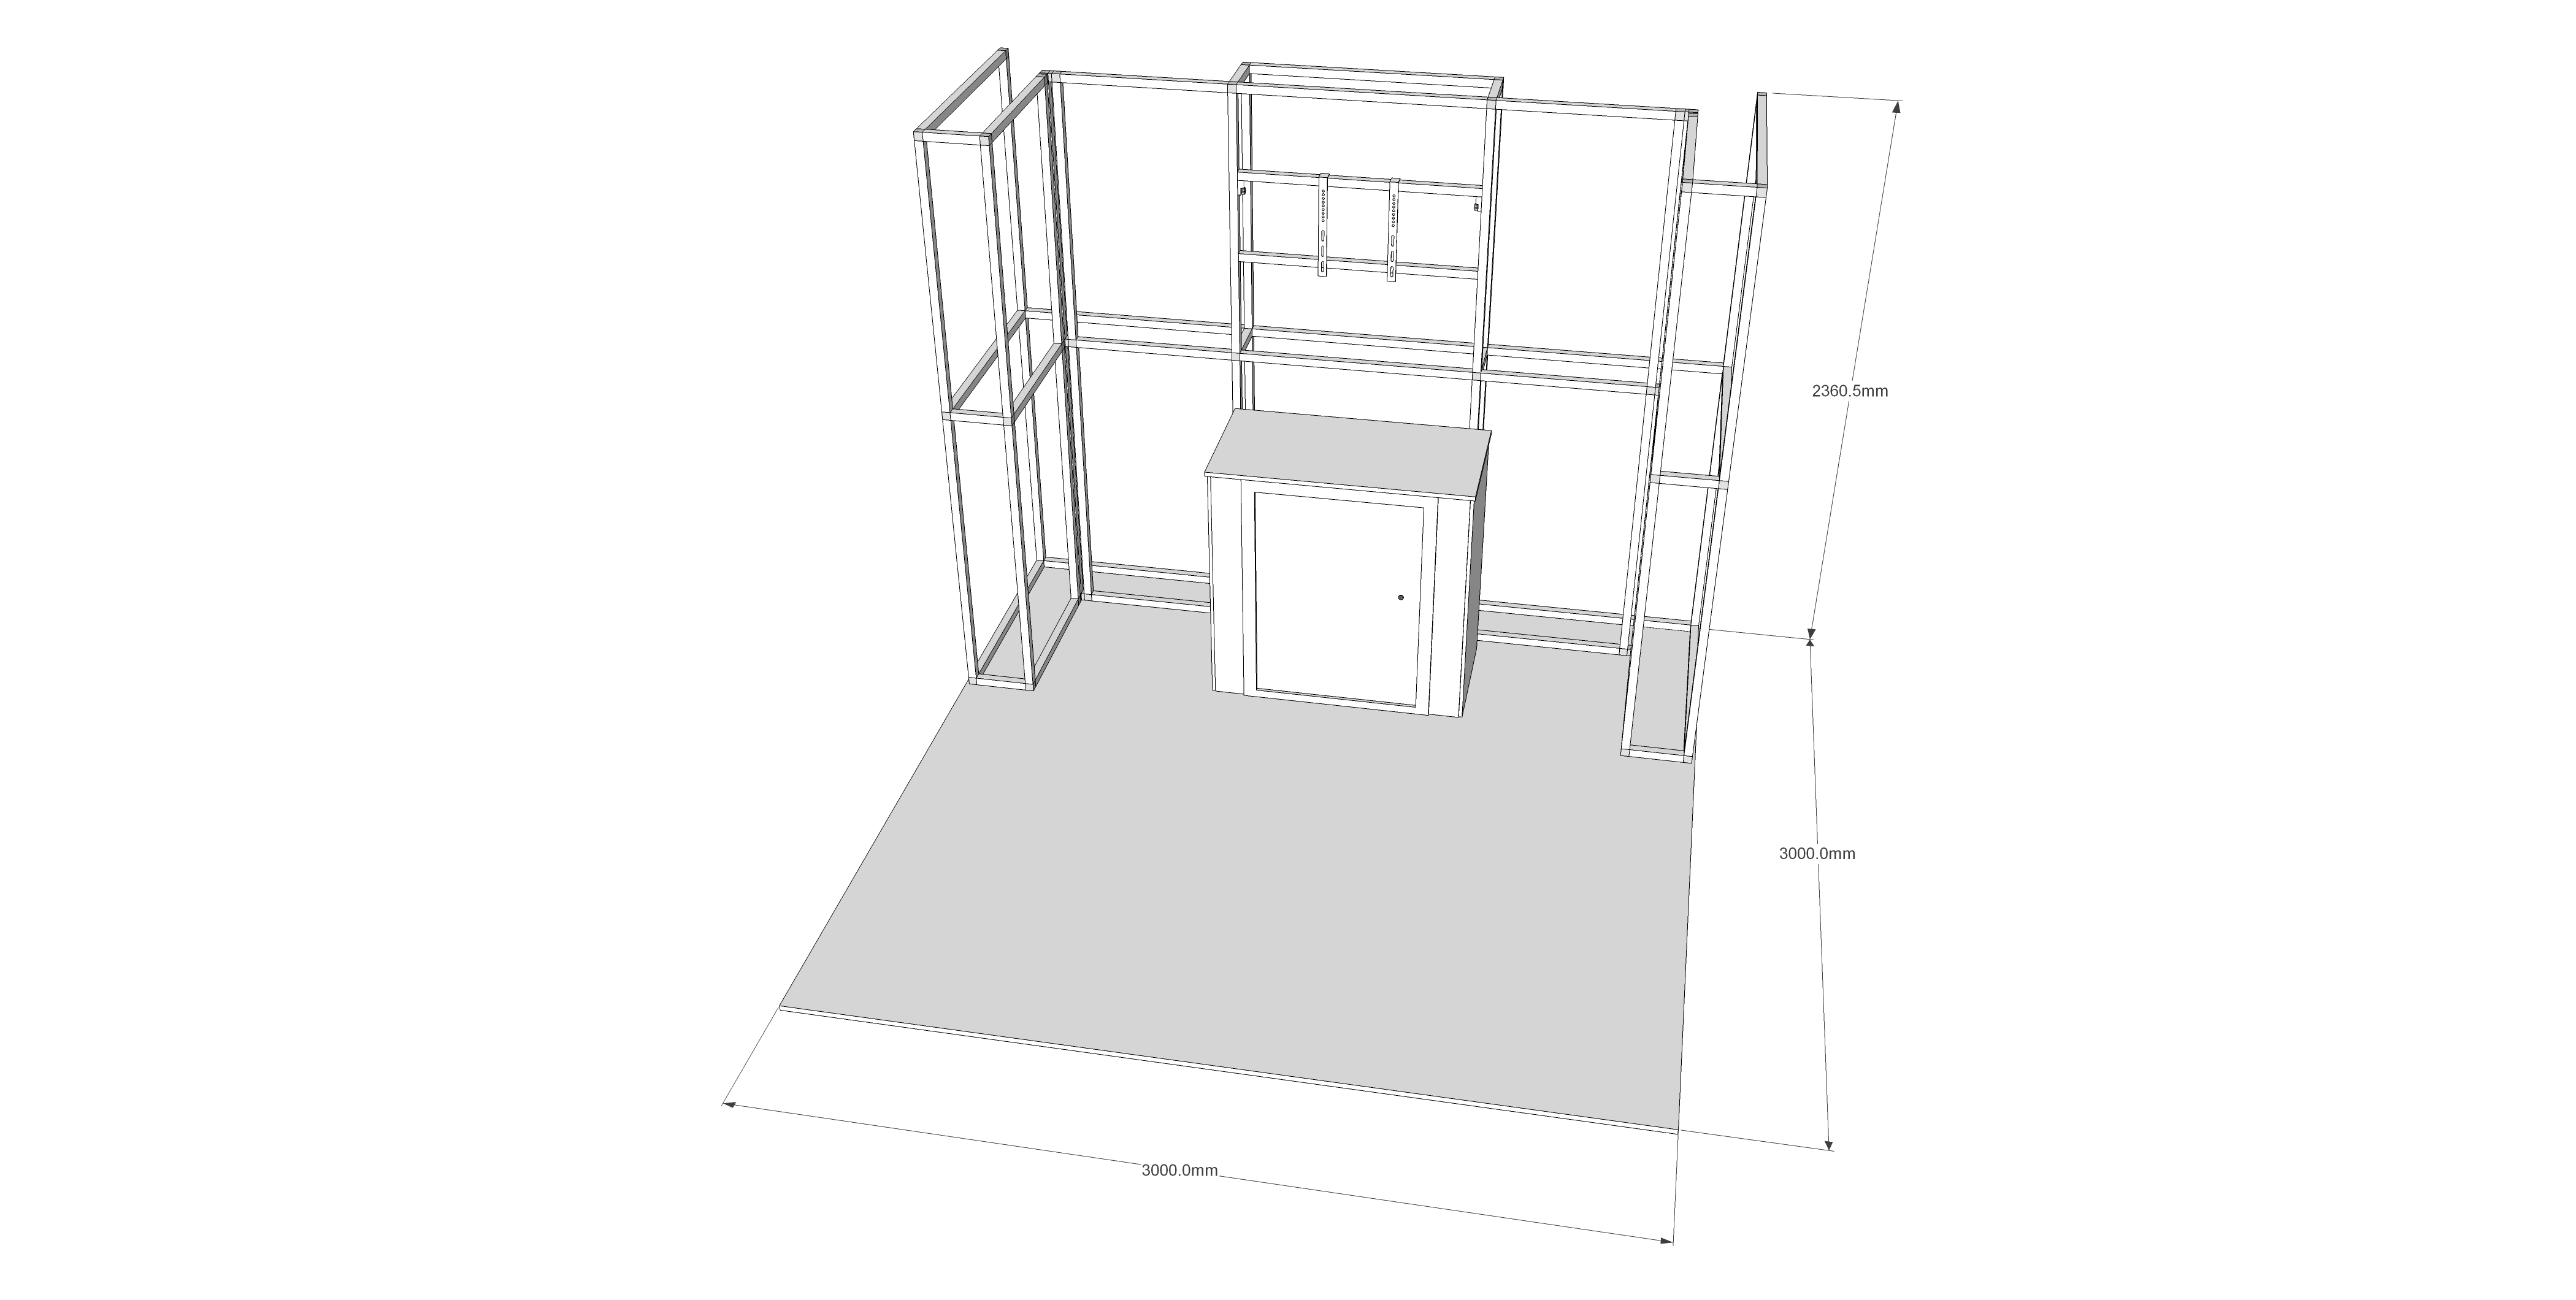 3m x 3m Stand V1 - Reconfigurable - 3 (2)